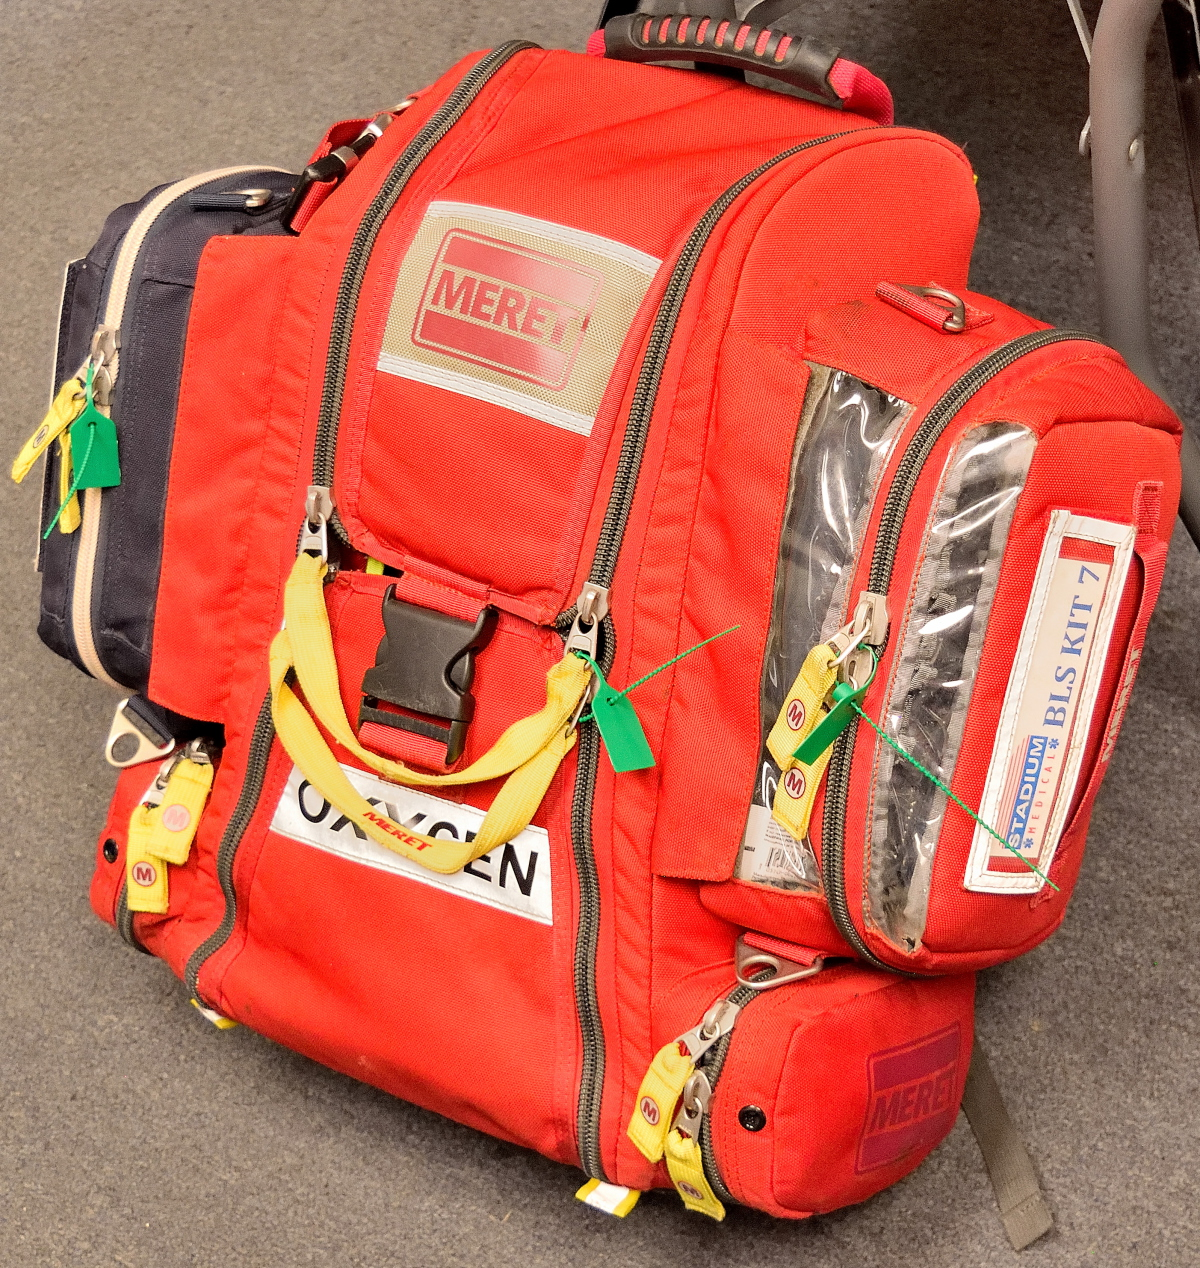 STAT Packs - Packs with AED, oxygen and other materials.